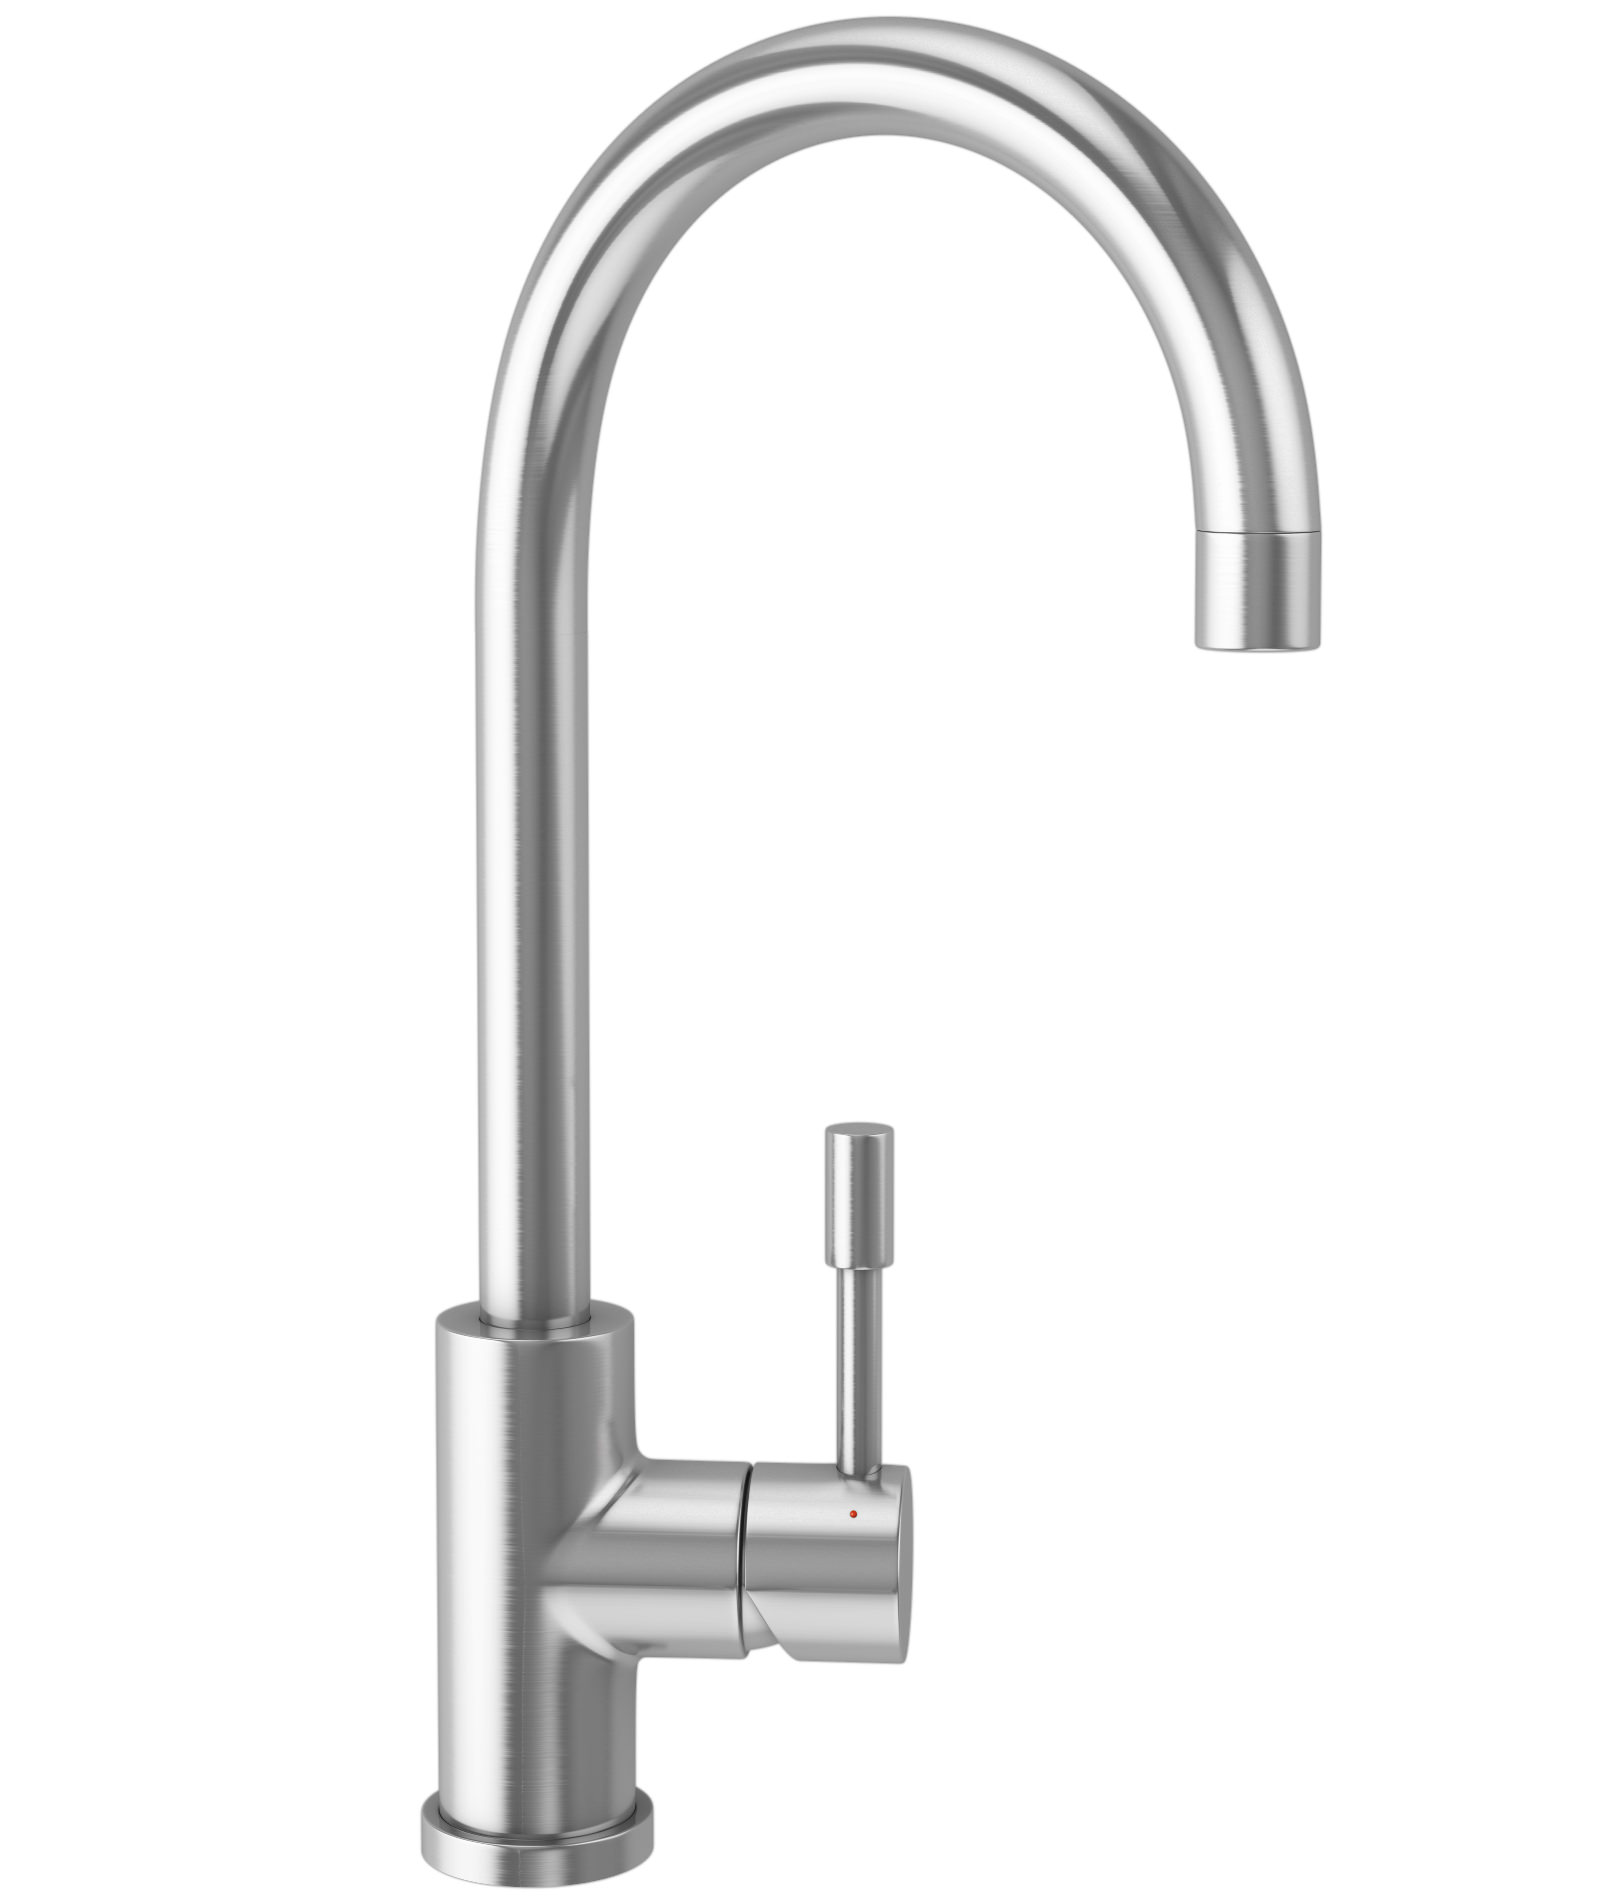 Franke Sink Cleaner : franke eos stainless steel kitchen sink mixer tap view all franke ...